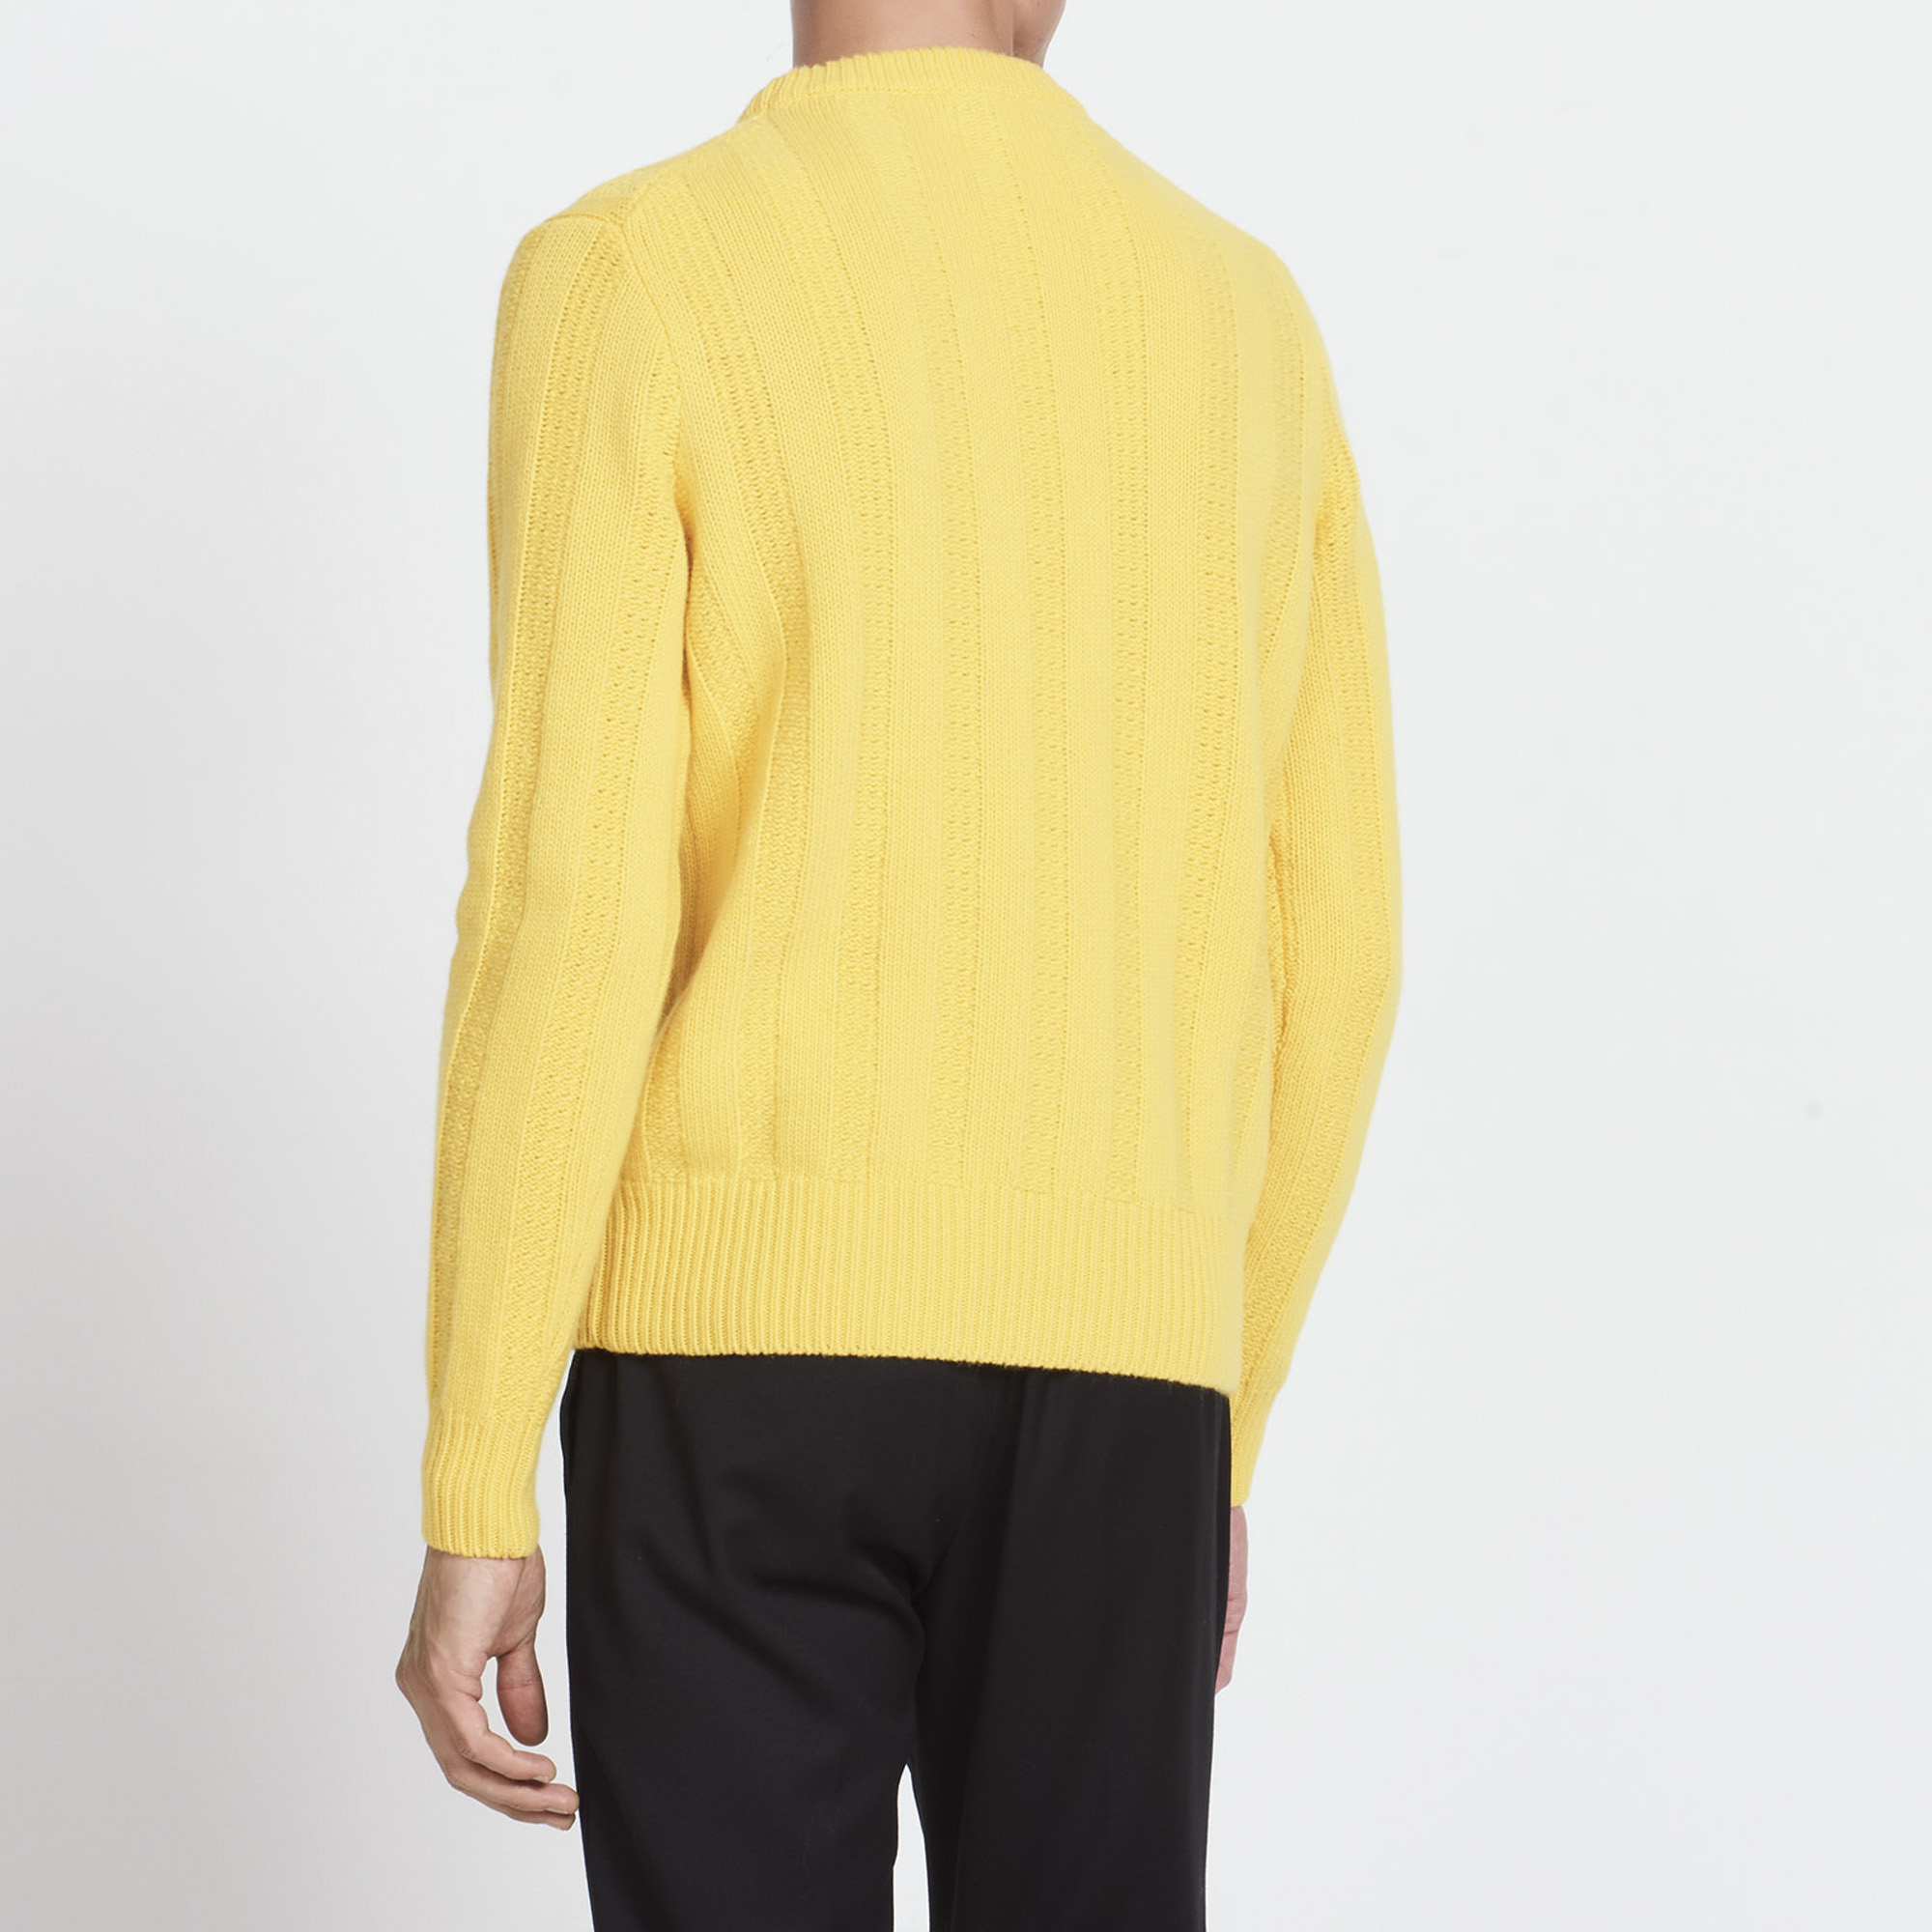 Round neck thick knit sweater - Sweaters & Cardigans - Sandro ...